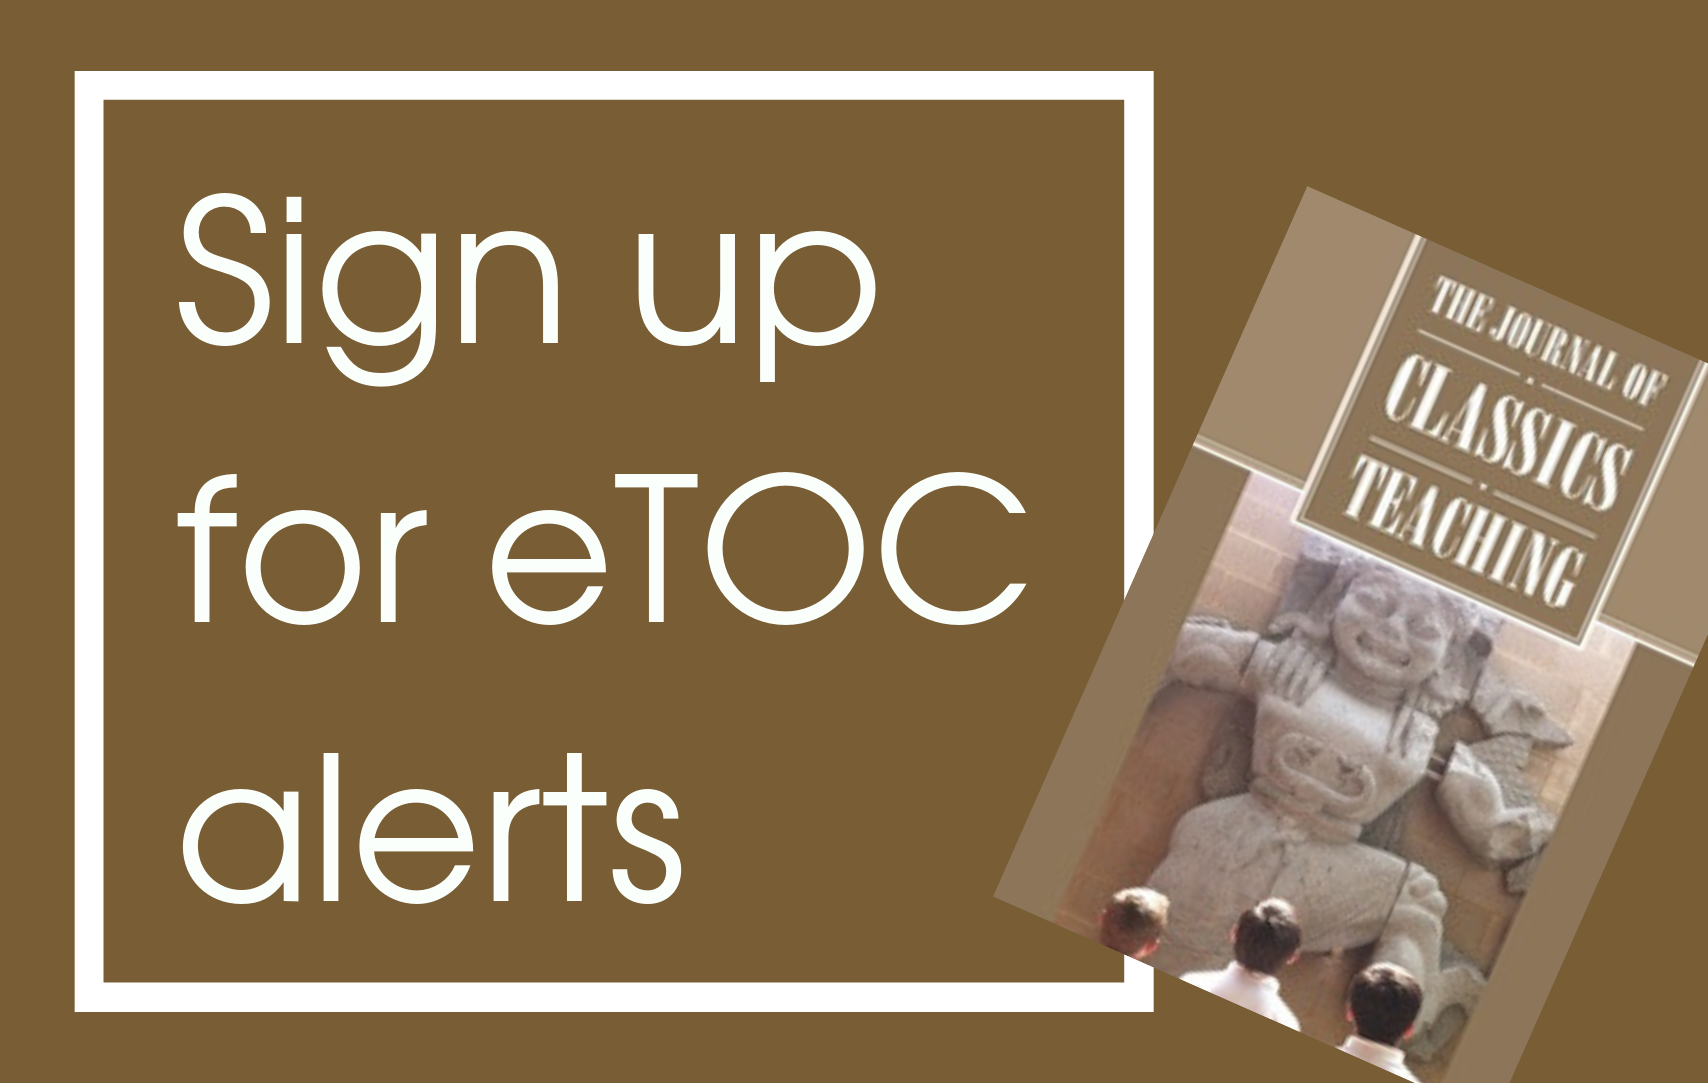 Sign up to receive eTOC alerts for JCT